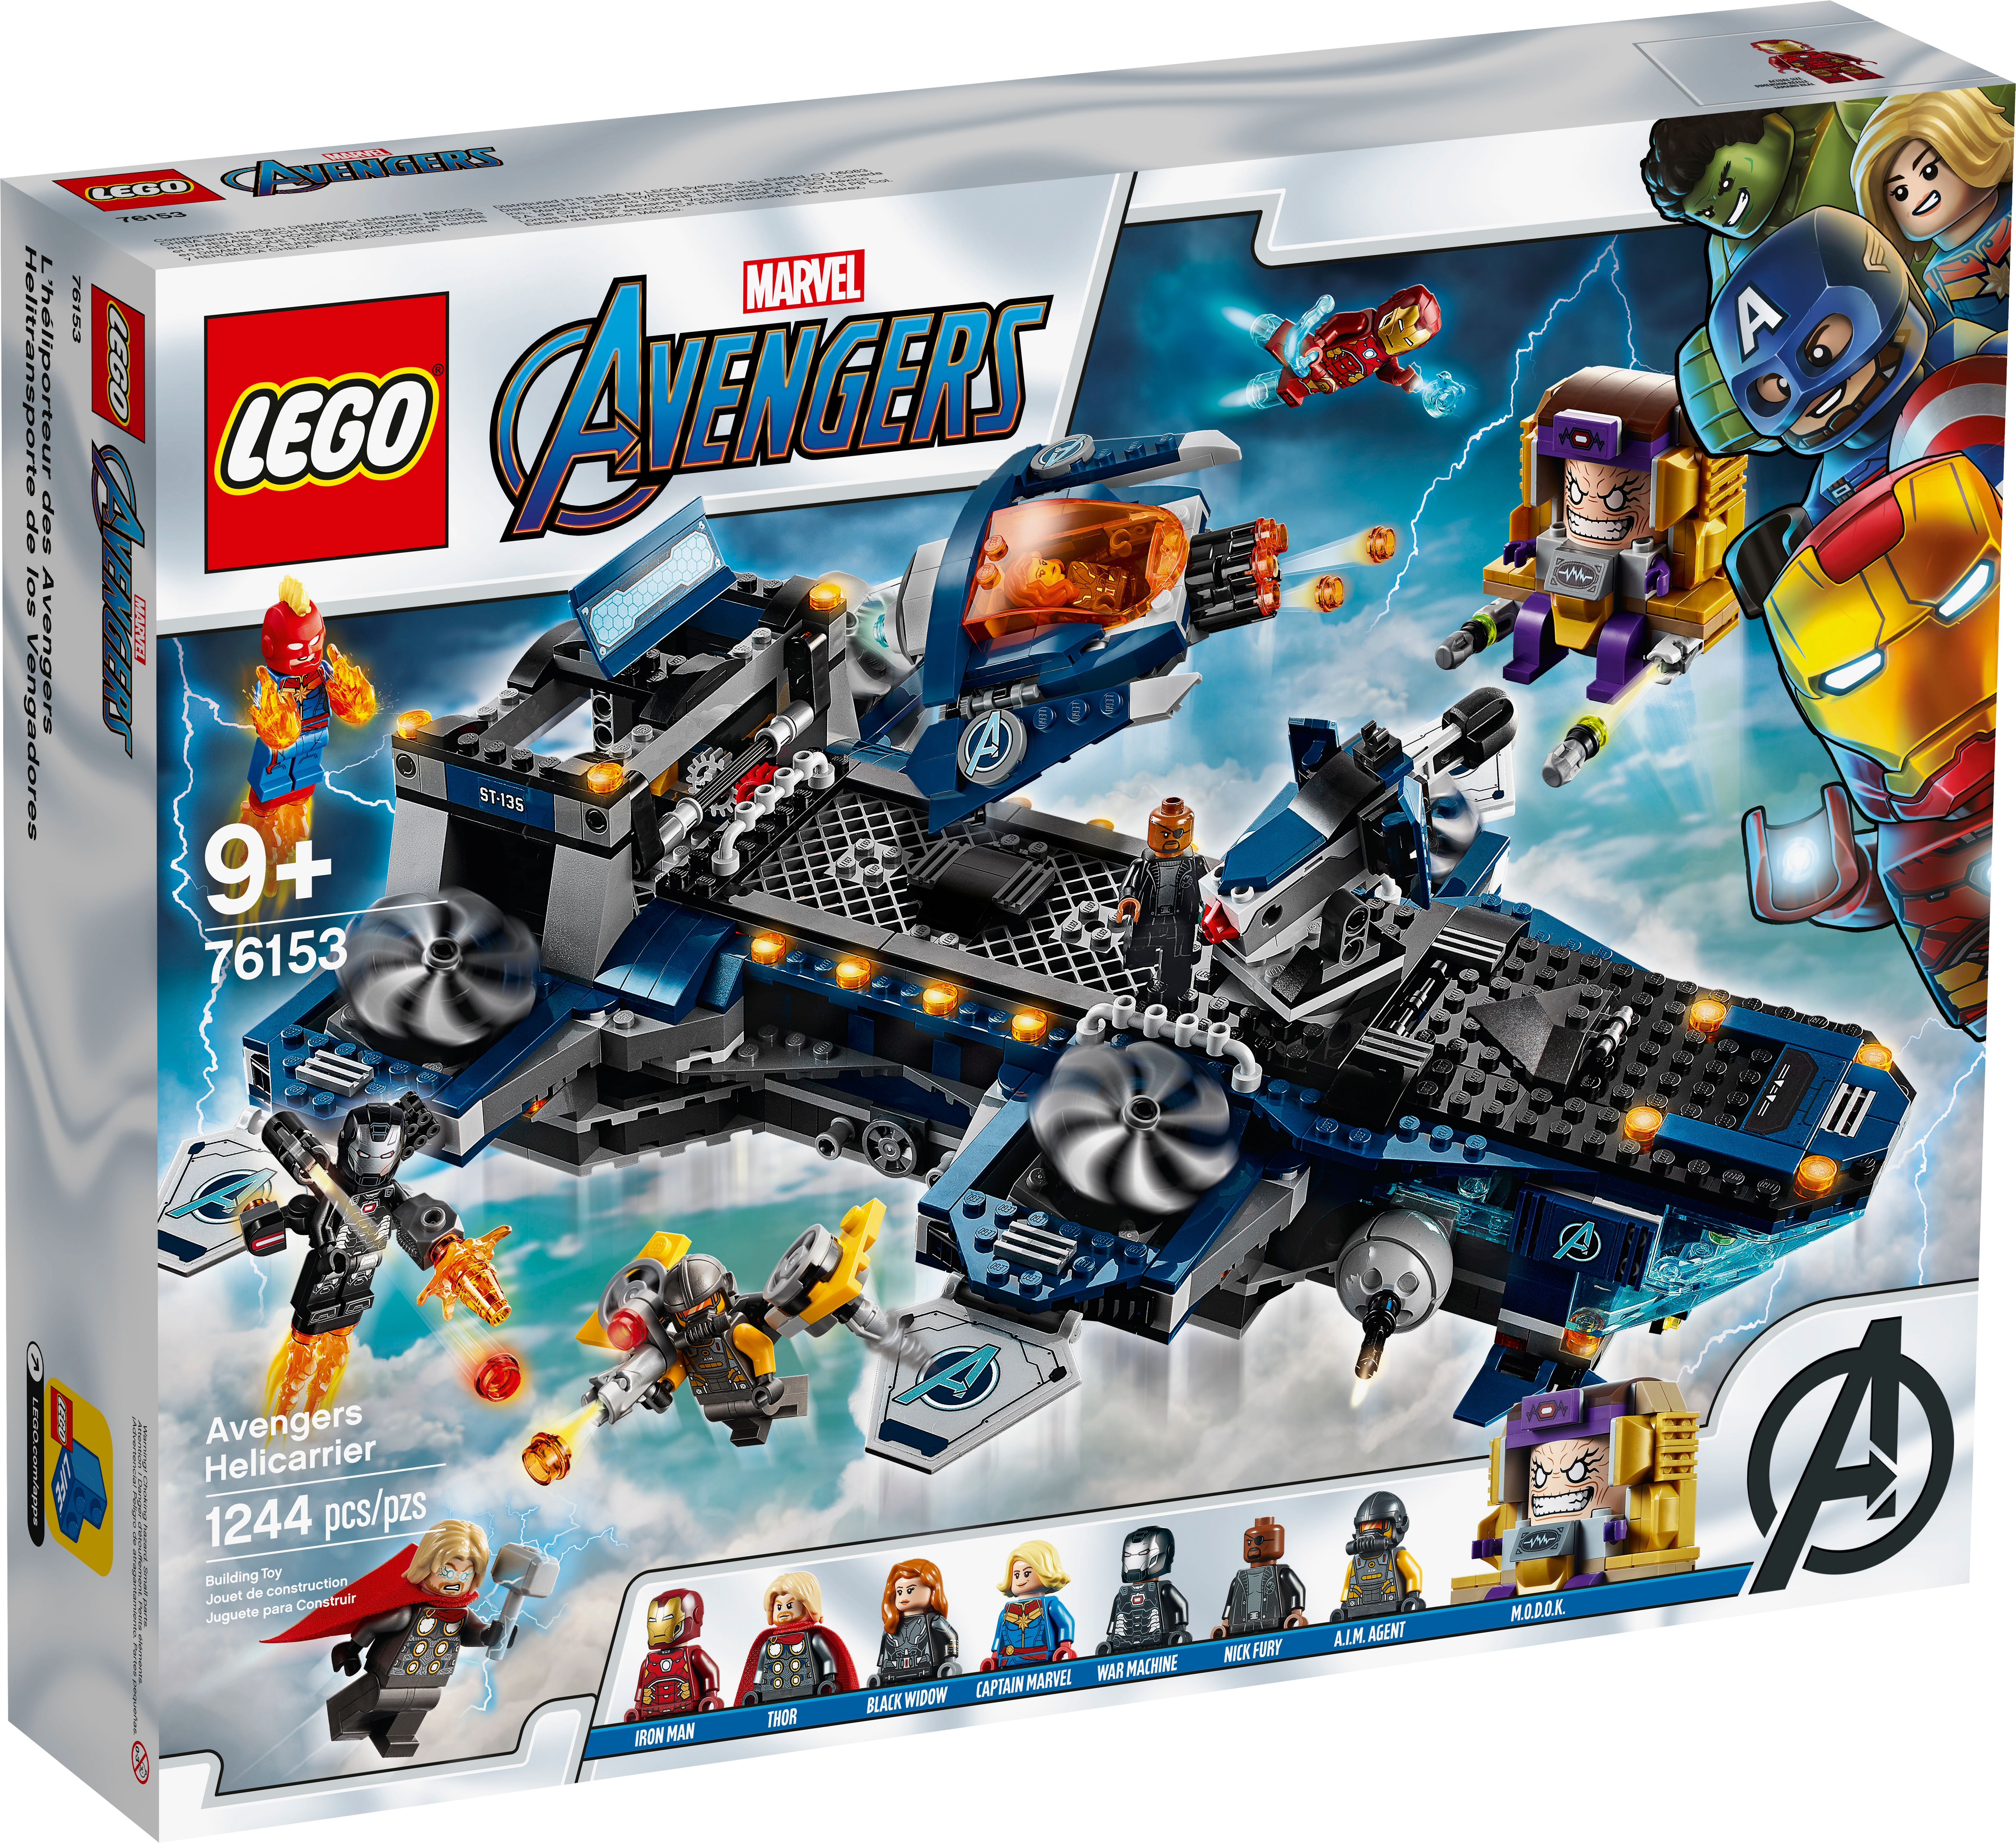 Avengers Helicarrier 76153 Marvel Buy Online At The Official Lego Shop Us